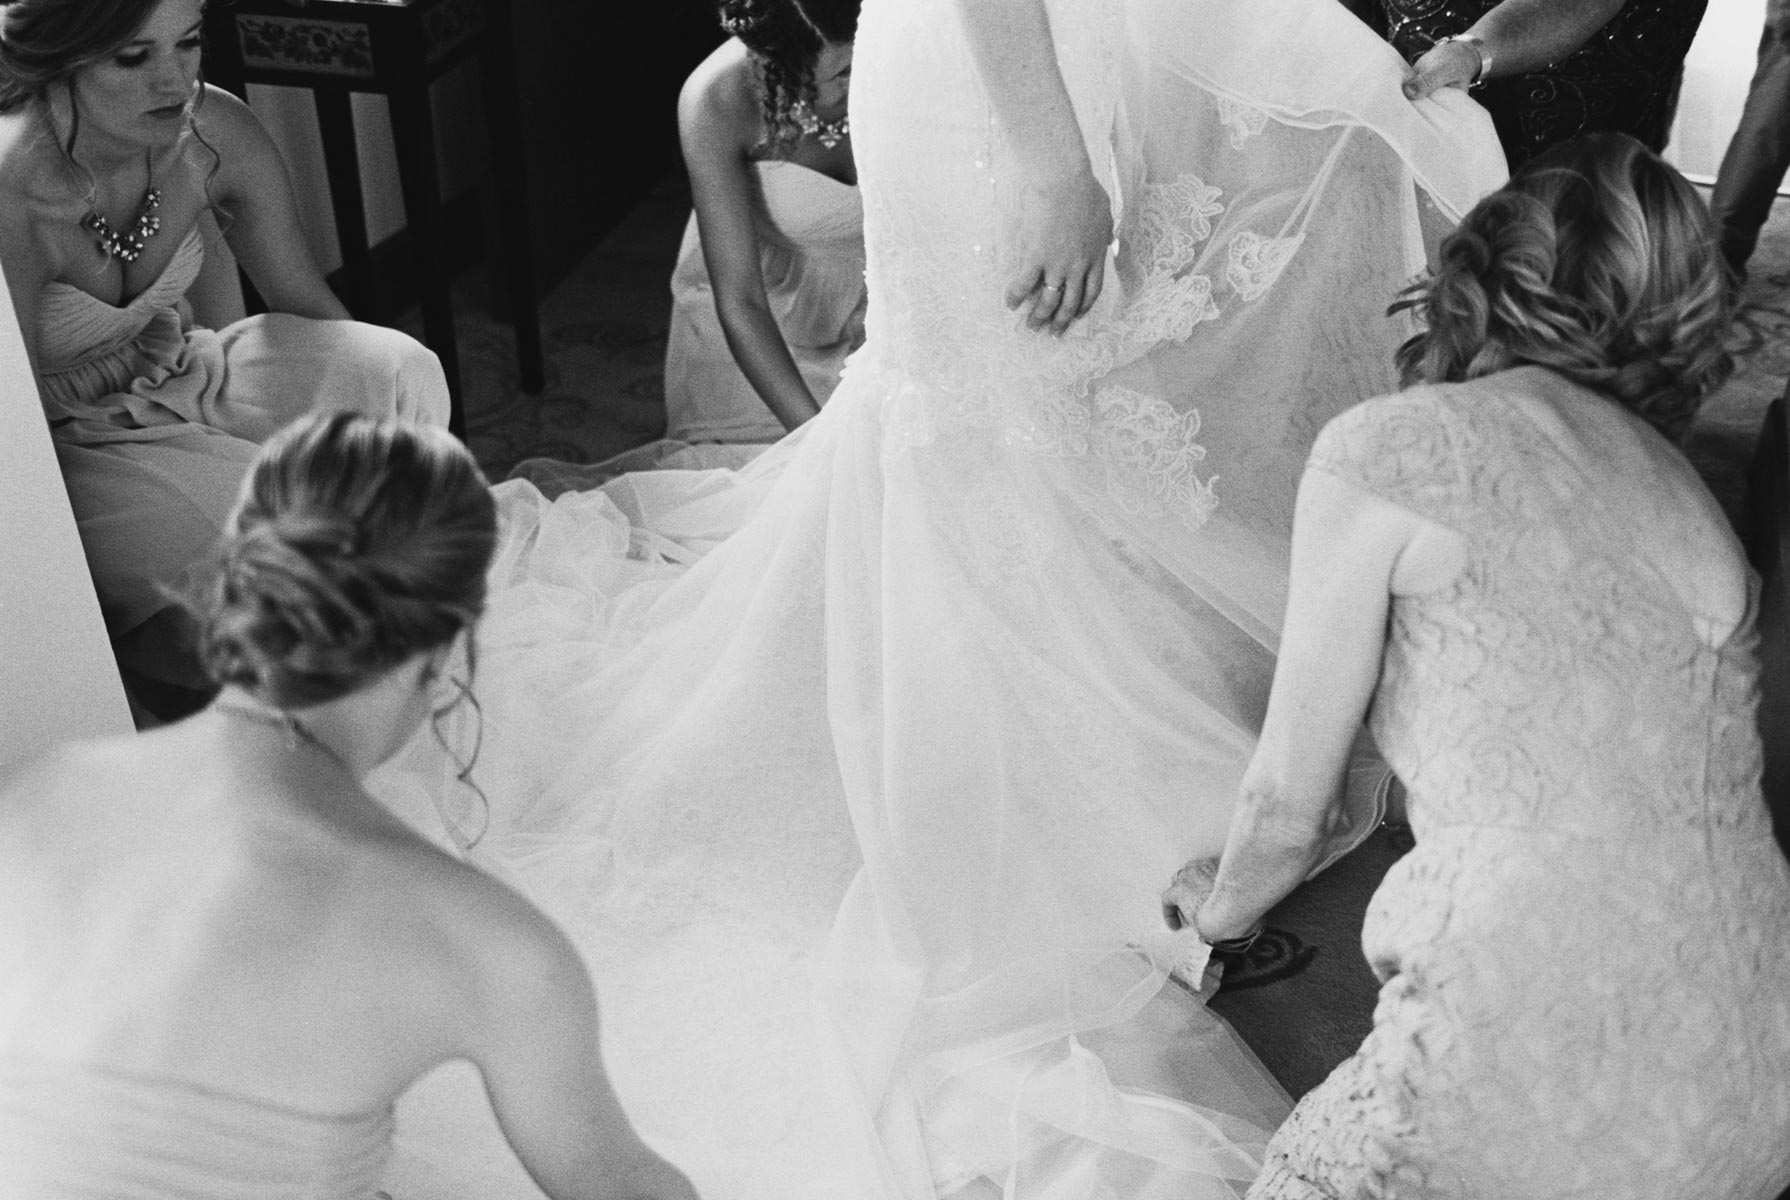 Bridesmaids helping with the gown at Arbor Crest Winery photographed by Spokane Wedding Photographer Anna Peters